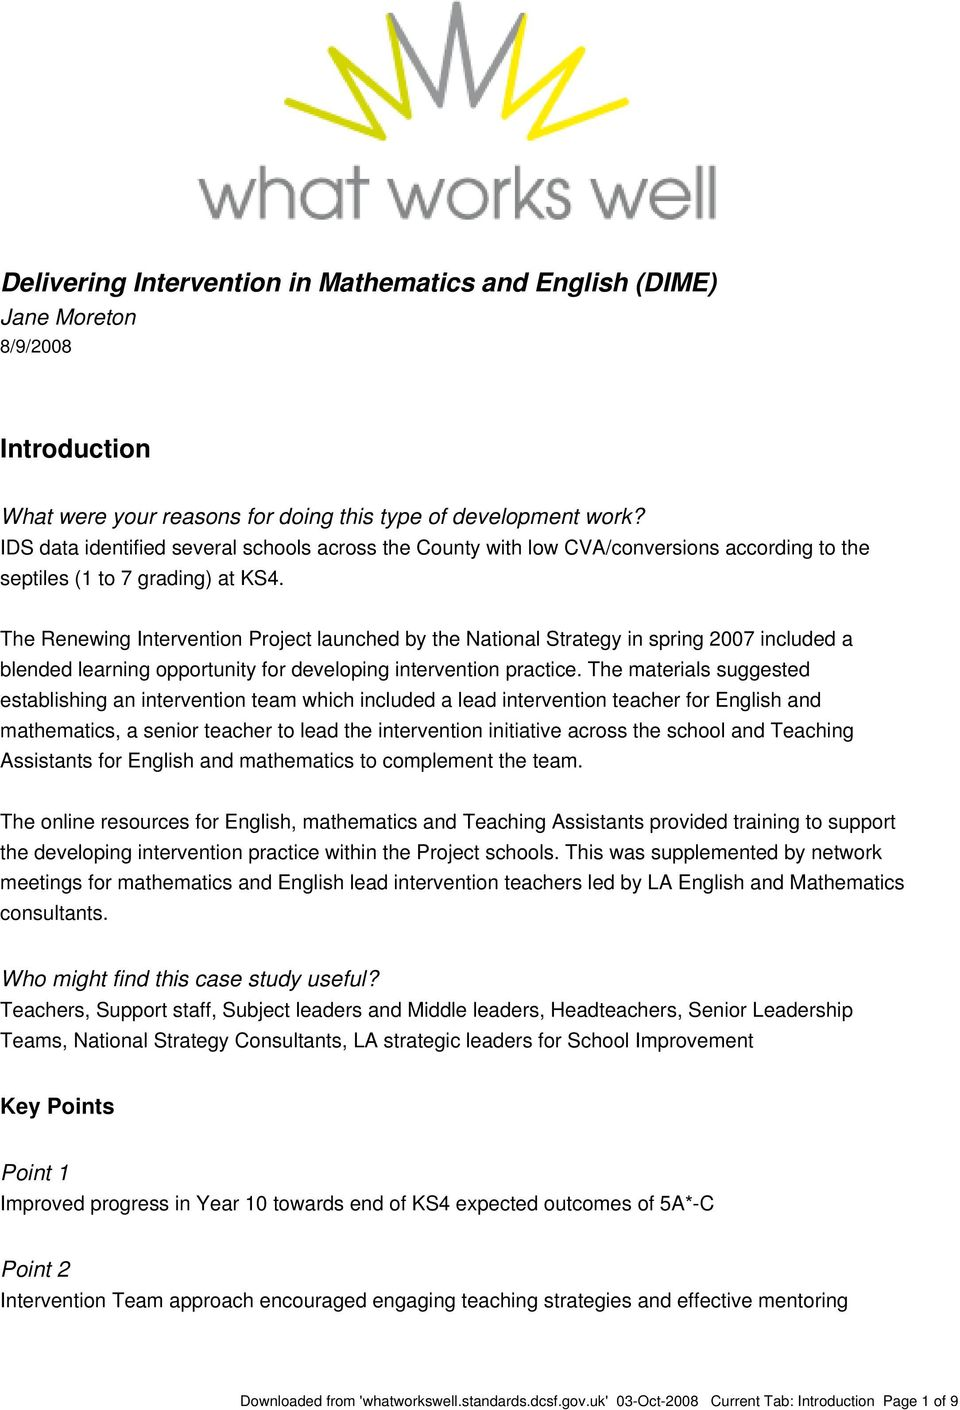 The Renewing Intervention Project launched by the National Strategy in spring 2007 included a blended learning opportunity for developing intervention practice.